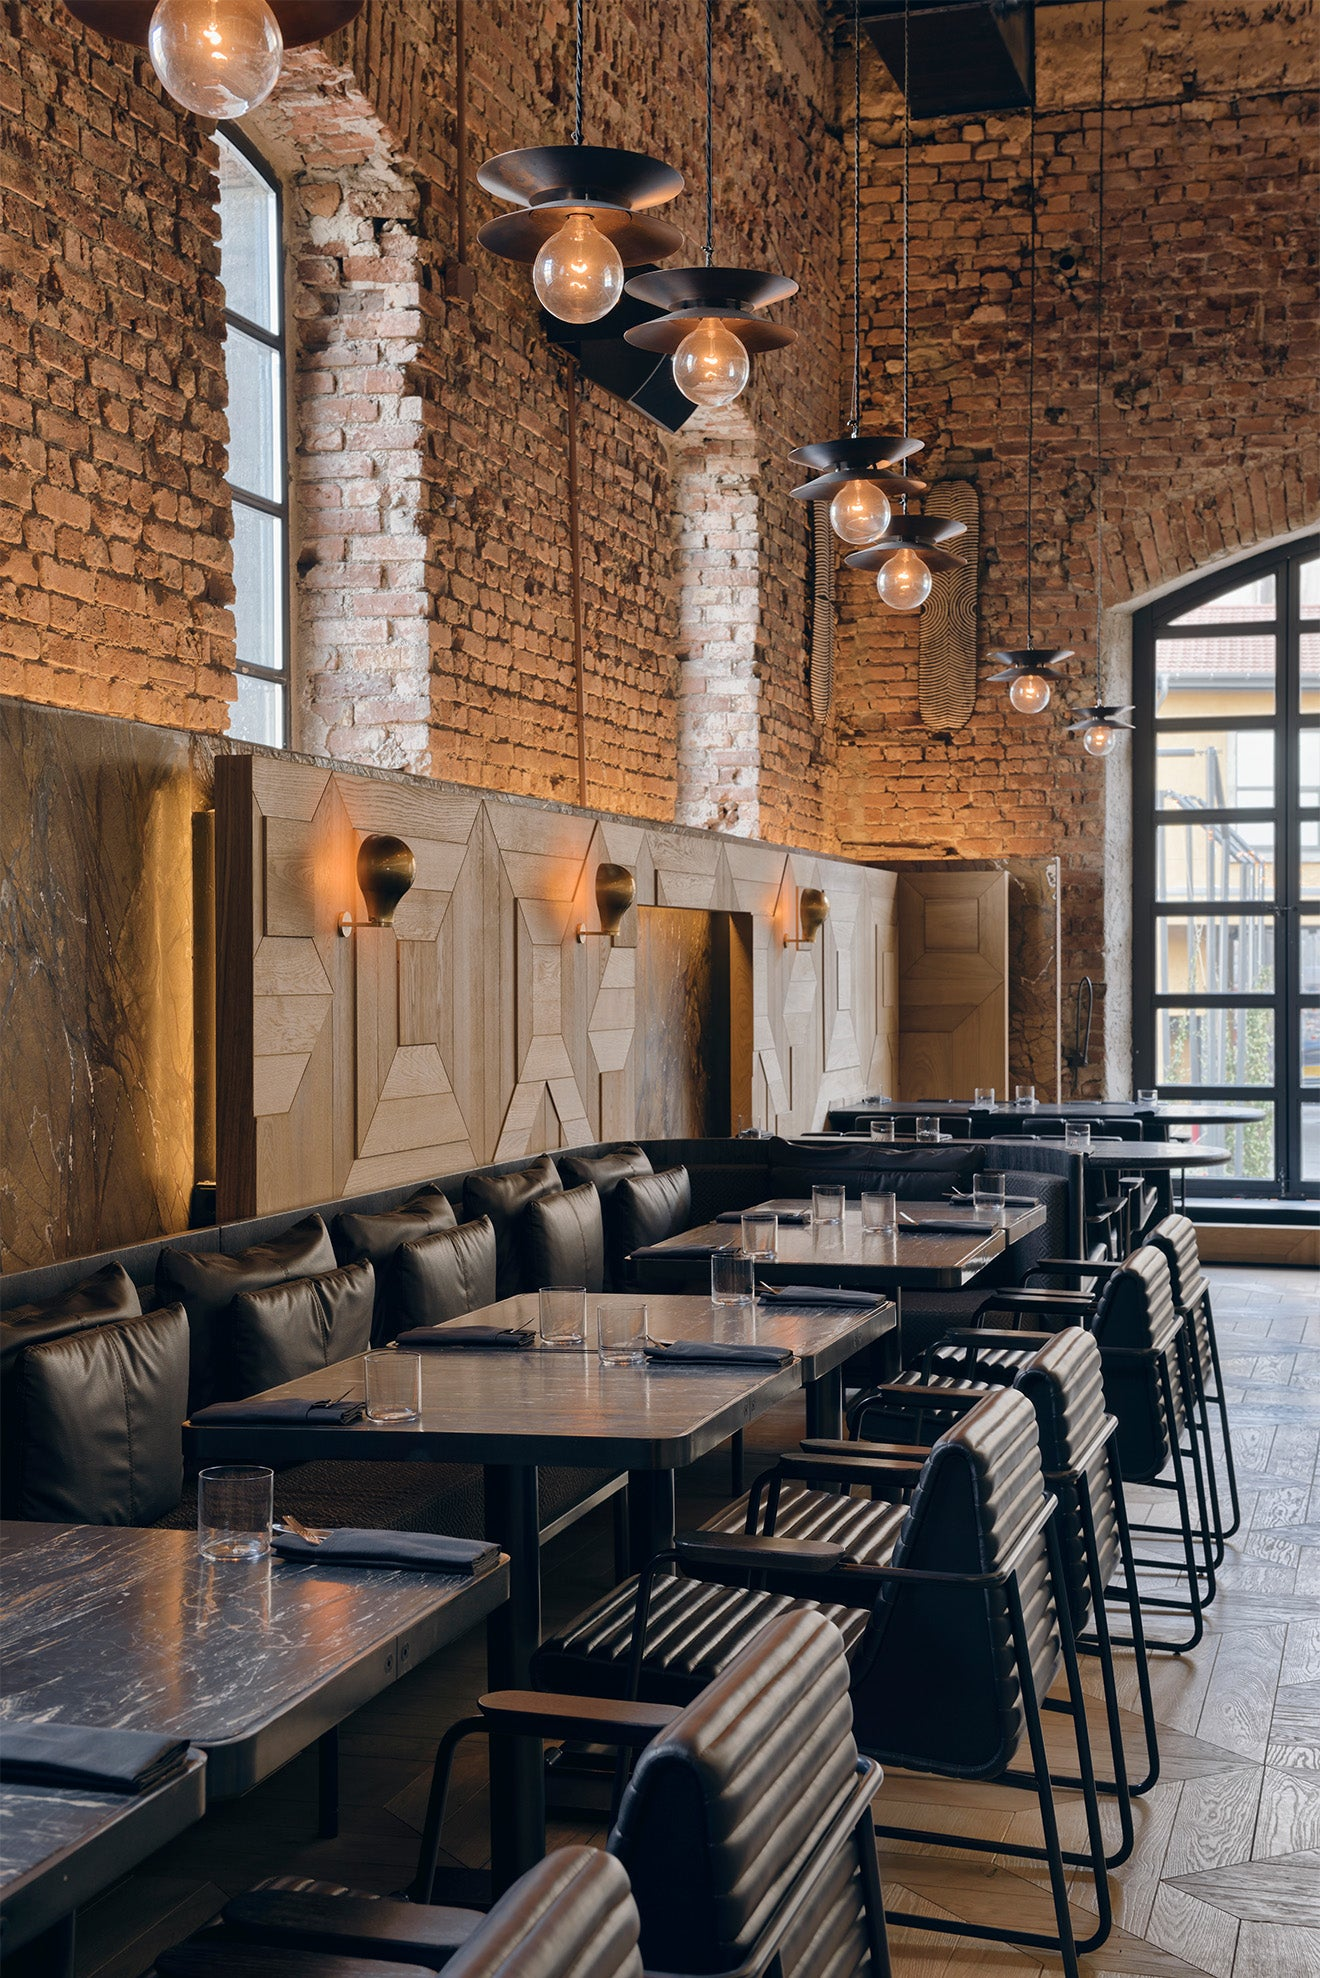 Luxury restaurant interior design exposed brickwork and industrial lighting